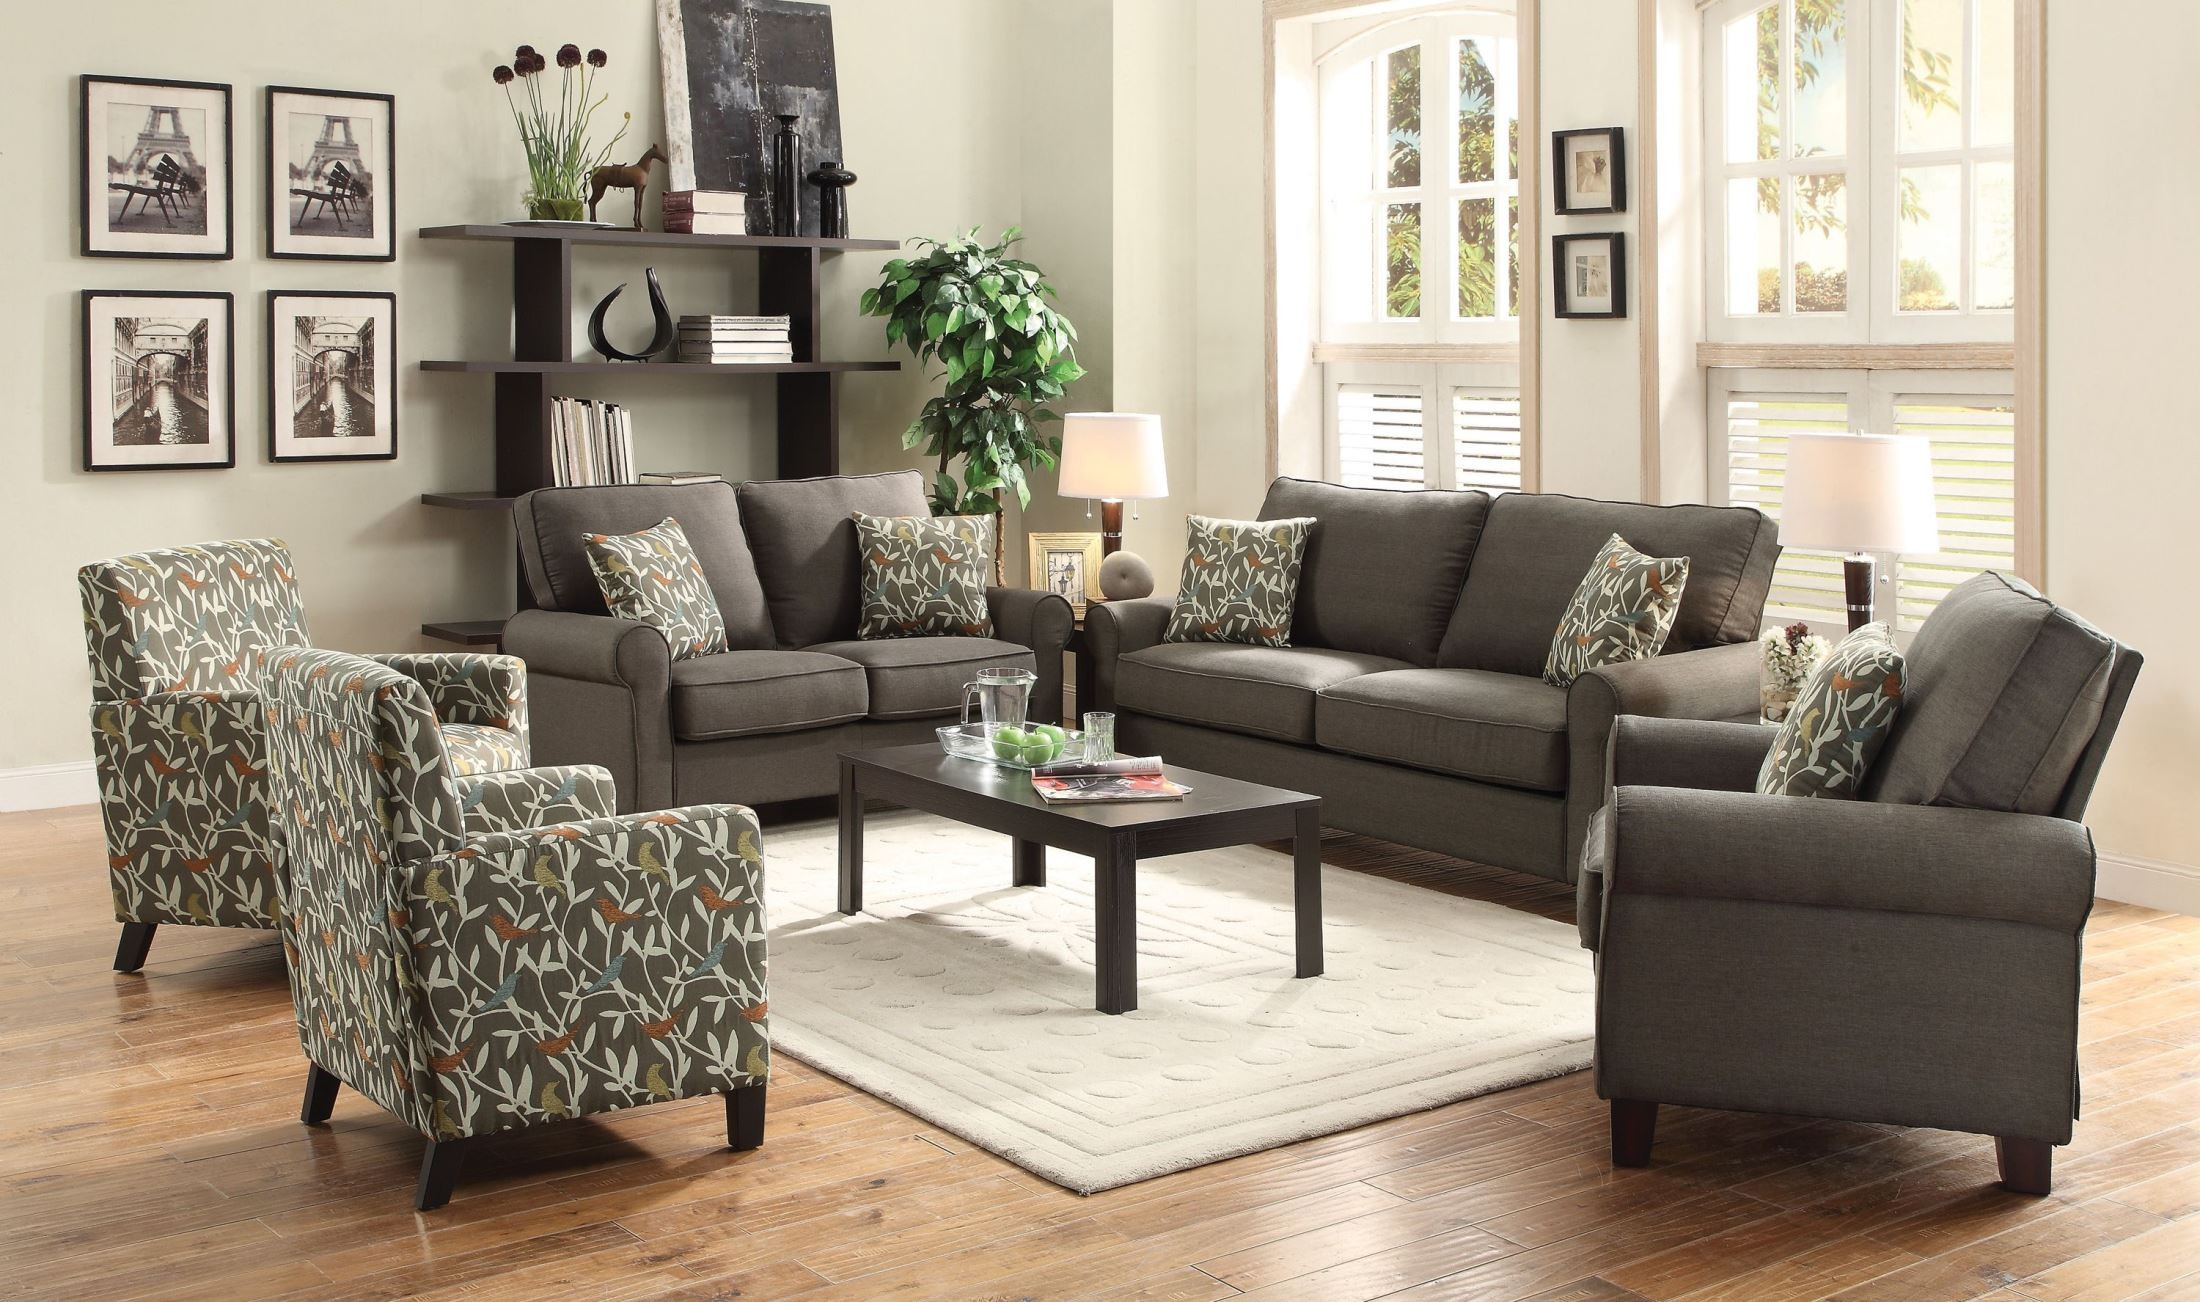 furniture sets living room noella grey living room set from coaster 504781 12091